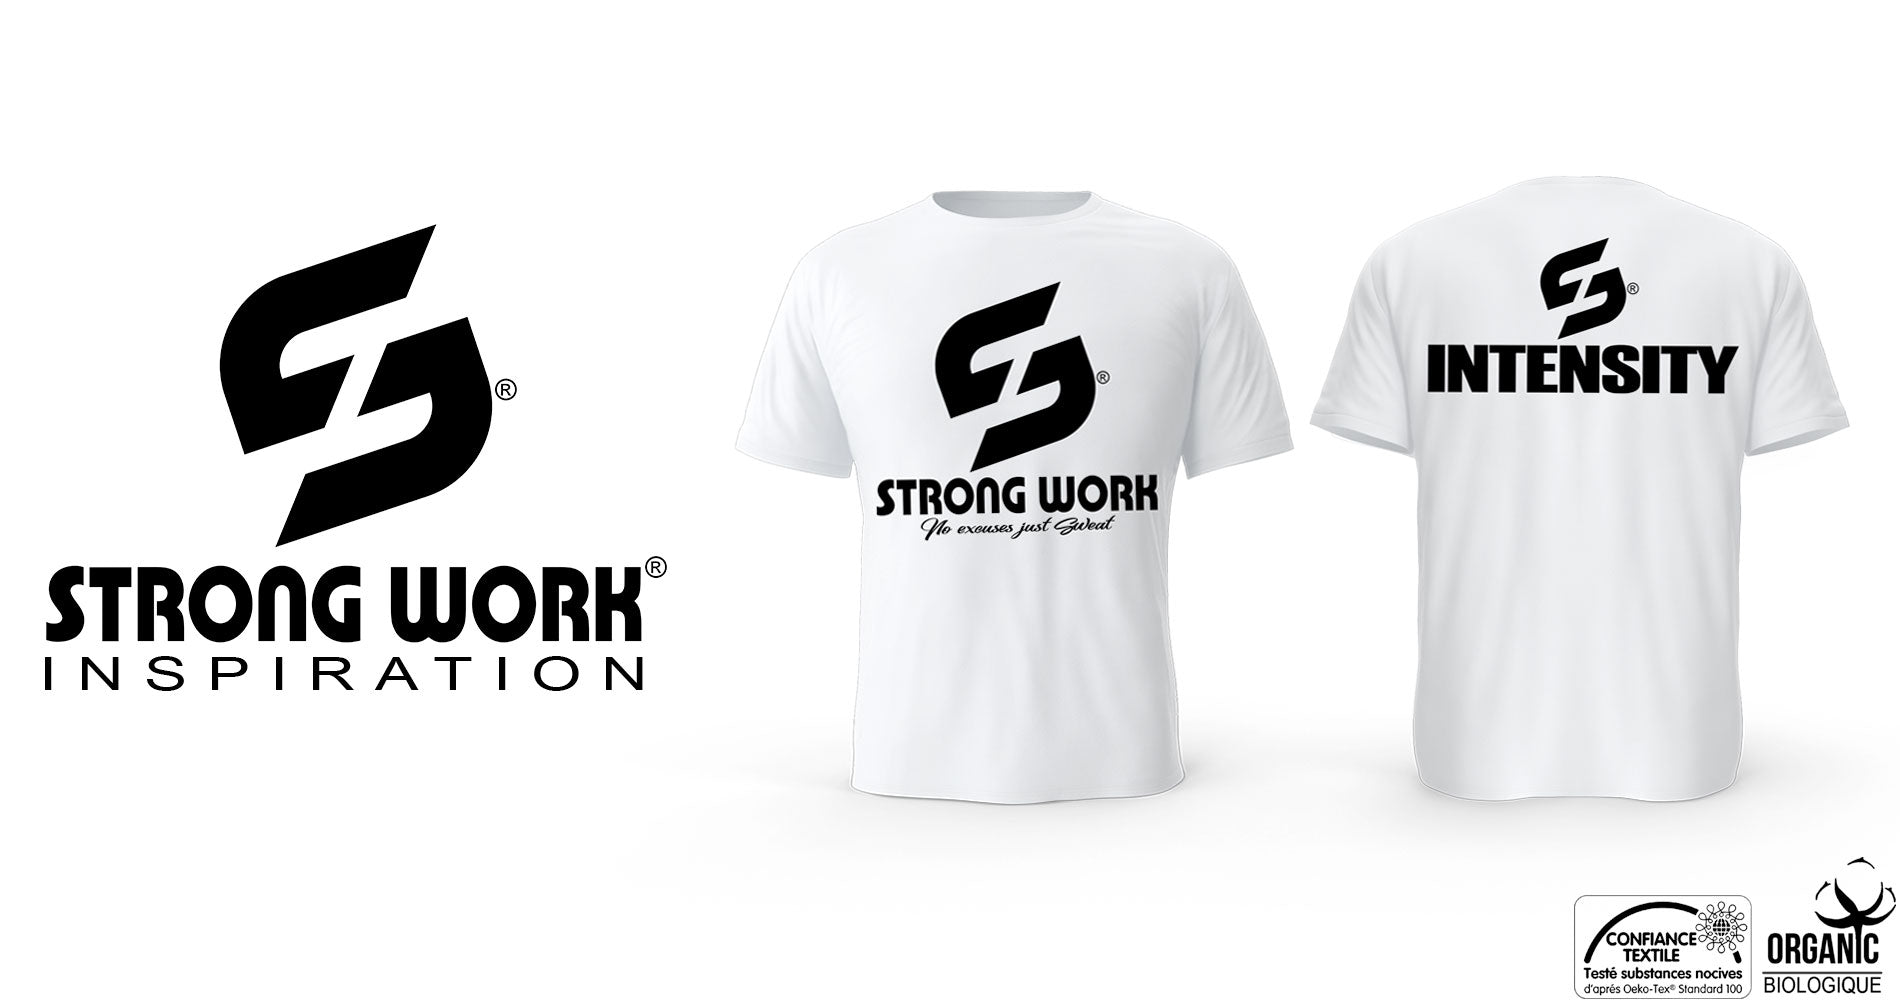 T-SHIRT POUR HOMME STRONG WORK INSPIRATION INTENSITY